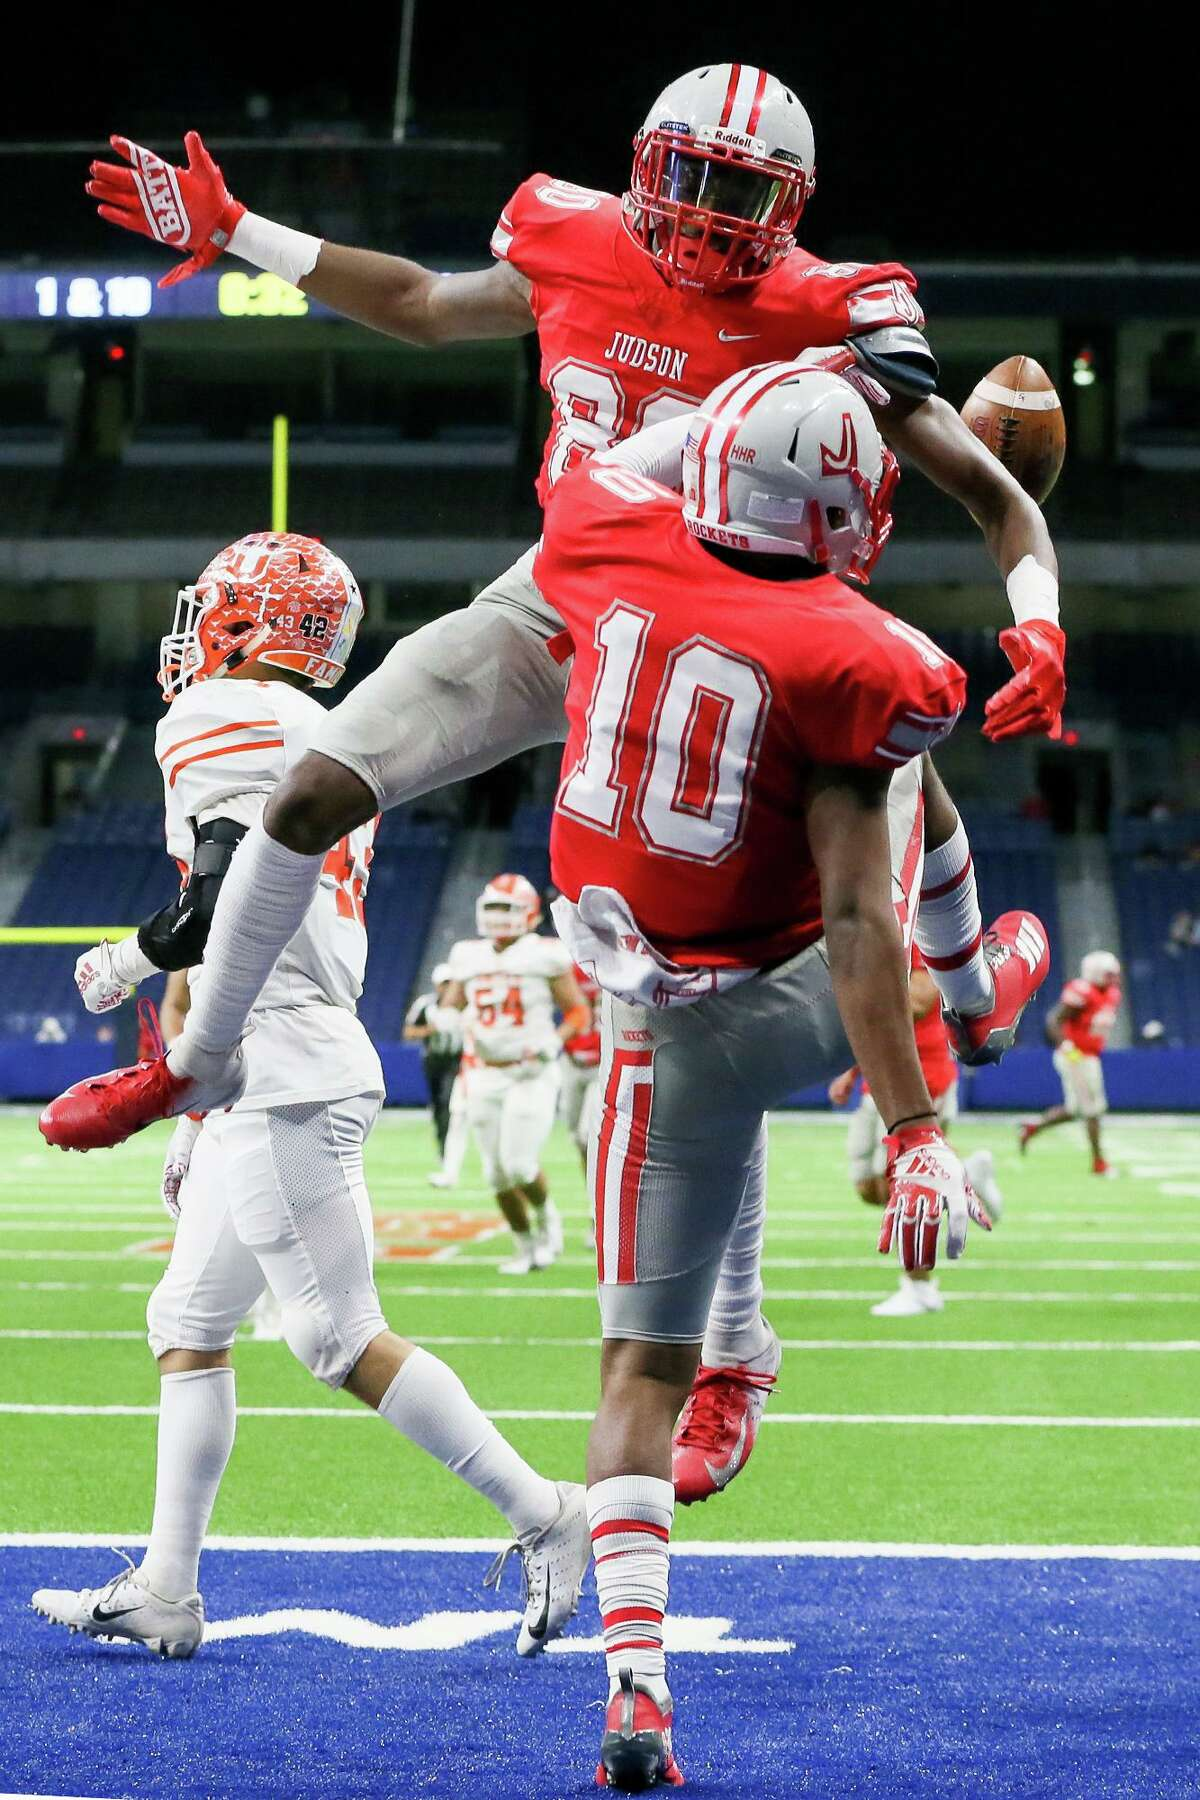 Judson's Anthony Shelton, front, celebrates his 71-yard touchdown reception with Davion Wilson during the first half of their third round Class 6A Division I high school football playoff game with Laredo United at the Alamodome on Friday, Nov. 29, 2019.